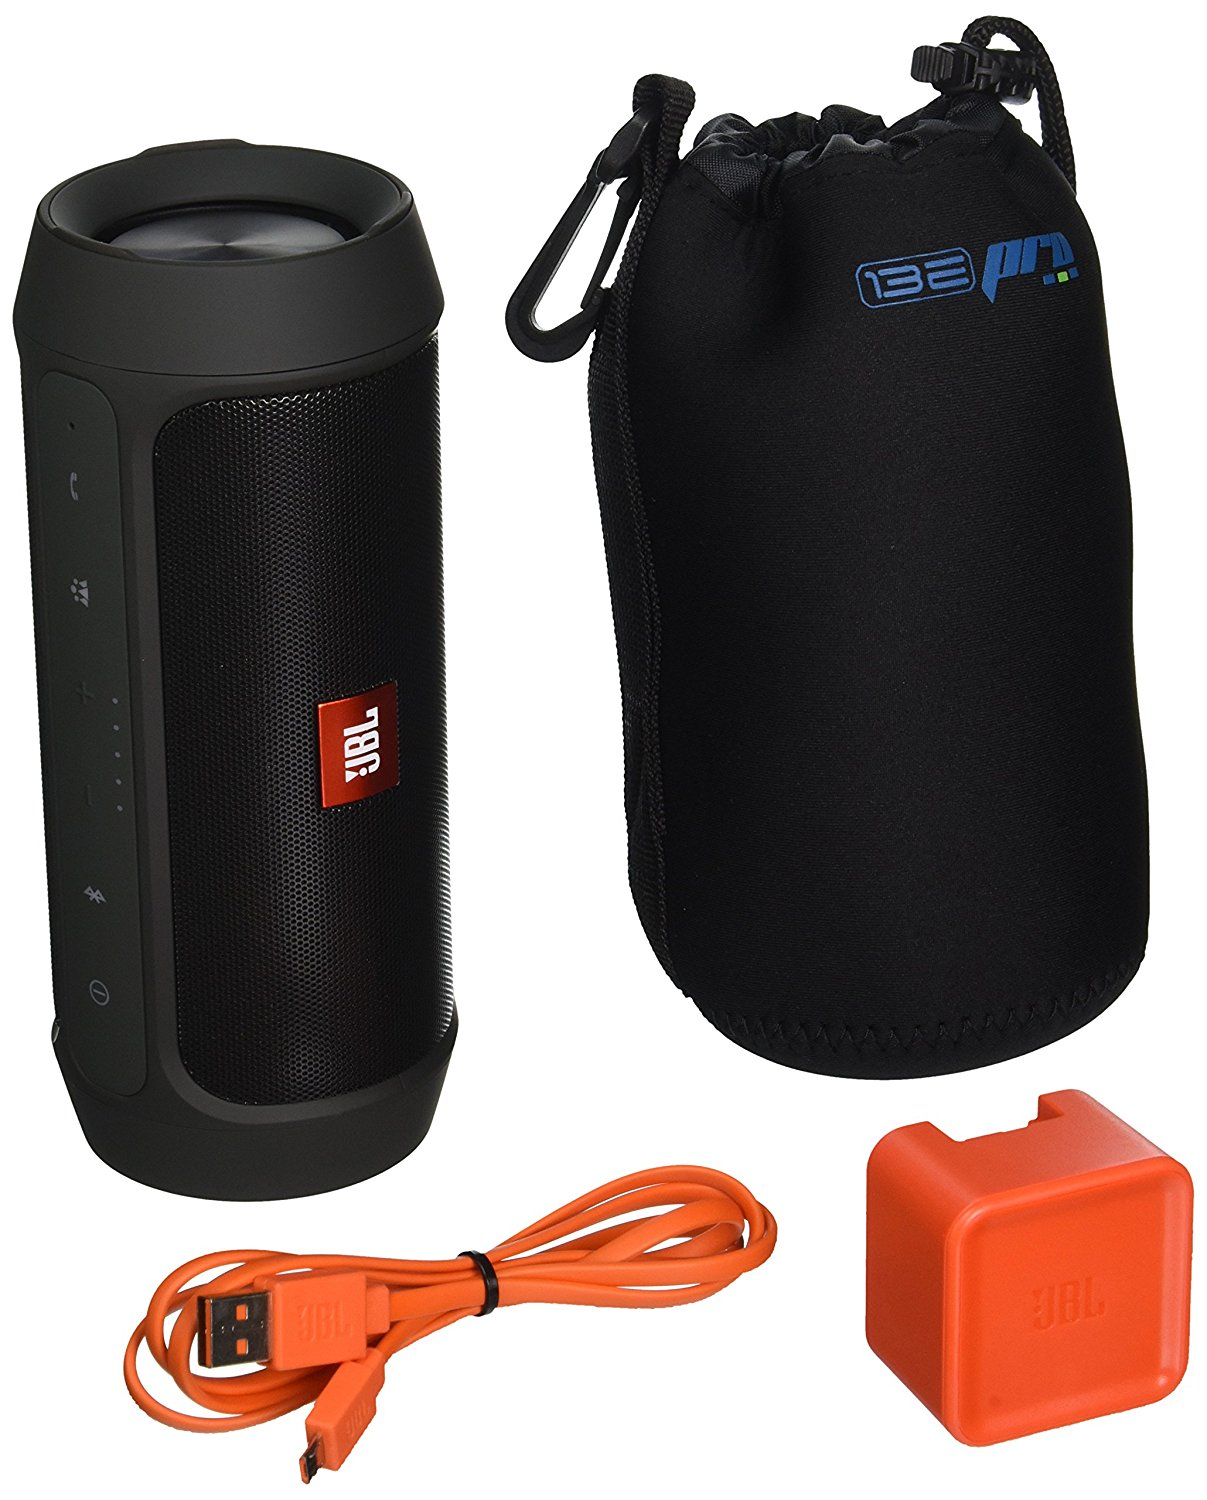 JBL Charge 2 Plus Splashproof Portable Bluetooth Speaker (Black) + I3ePro Water Resistant Carry Pouch by JBL